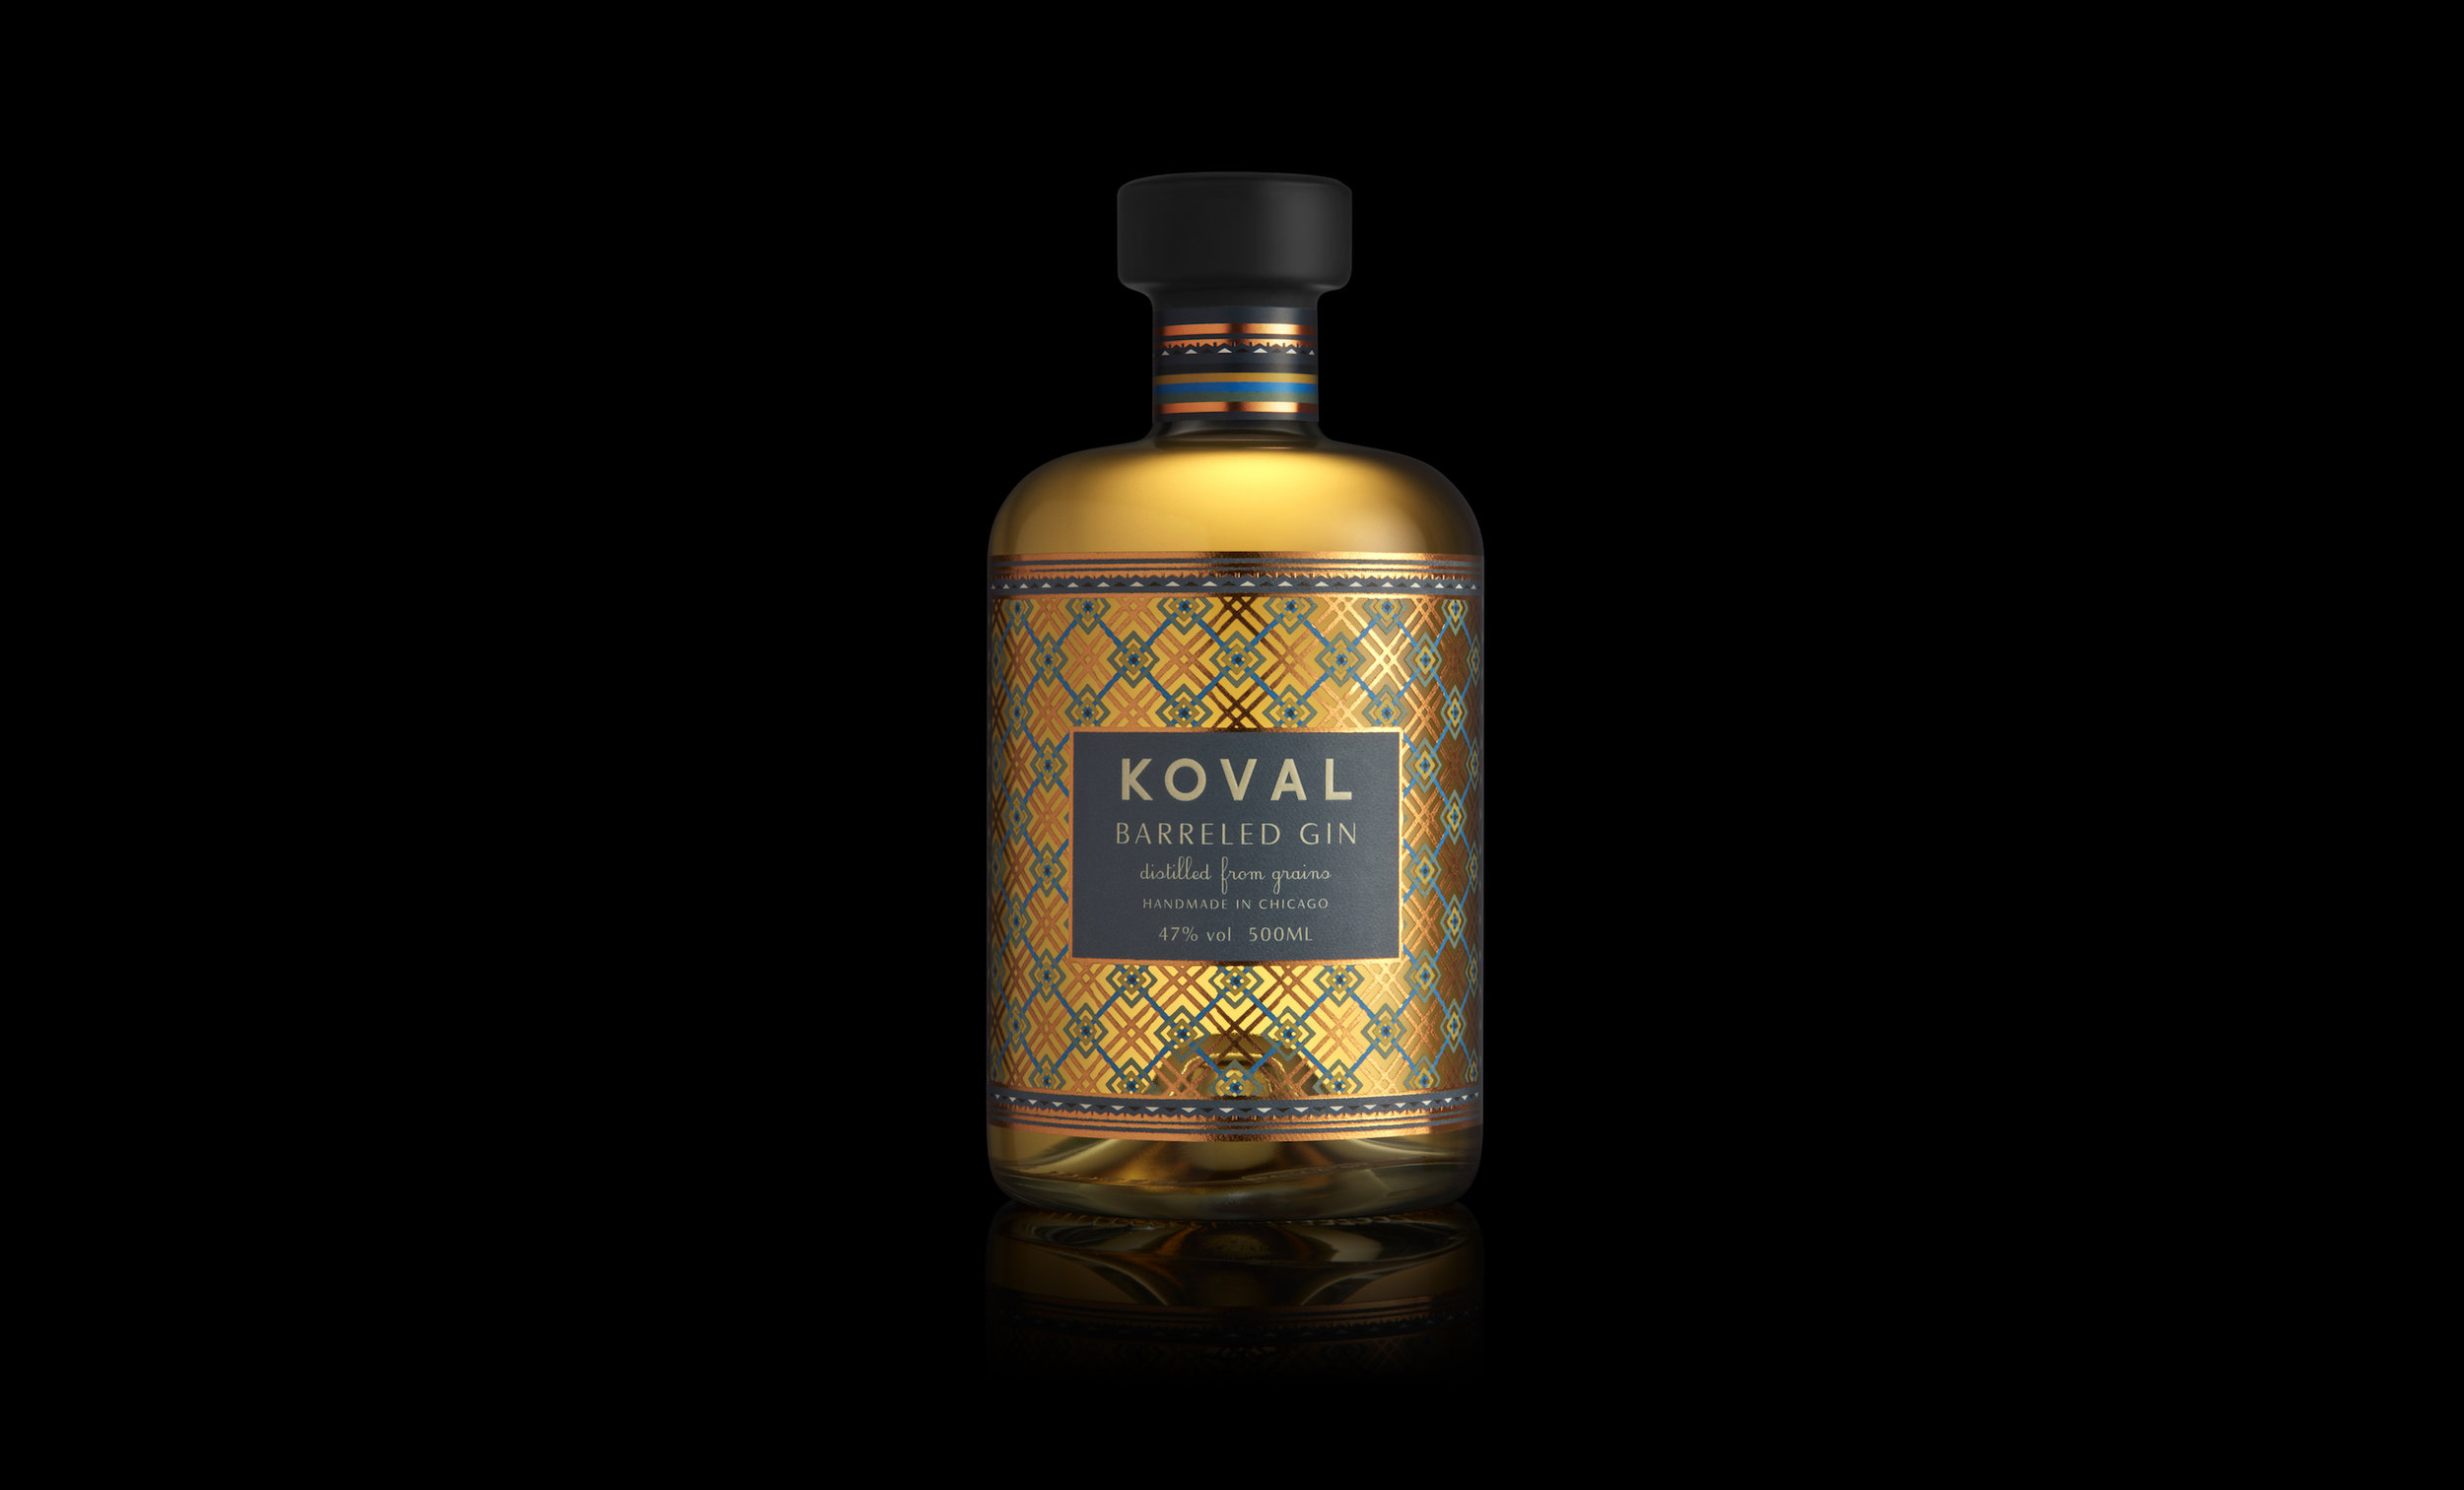 KOVAL_500ml_BarrellGin_OnBlack_F_V2.jpg